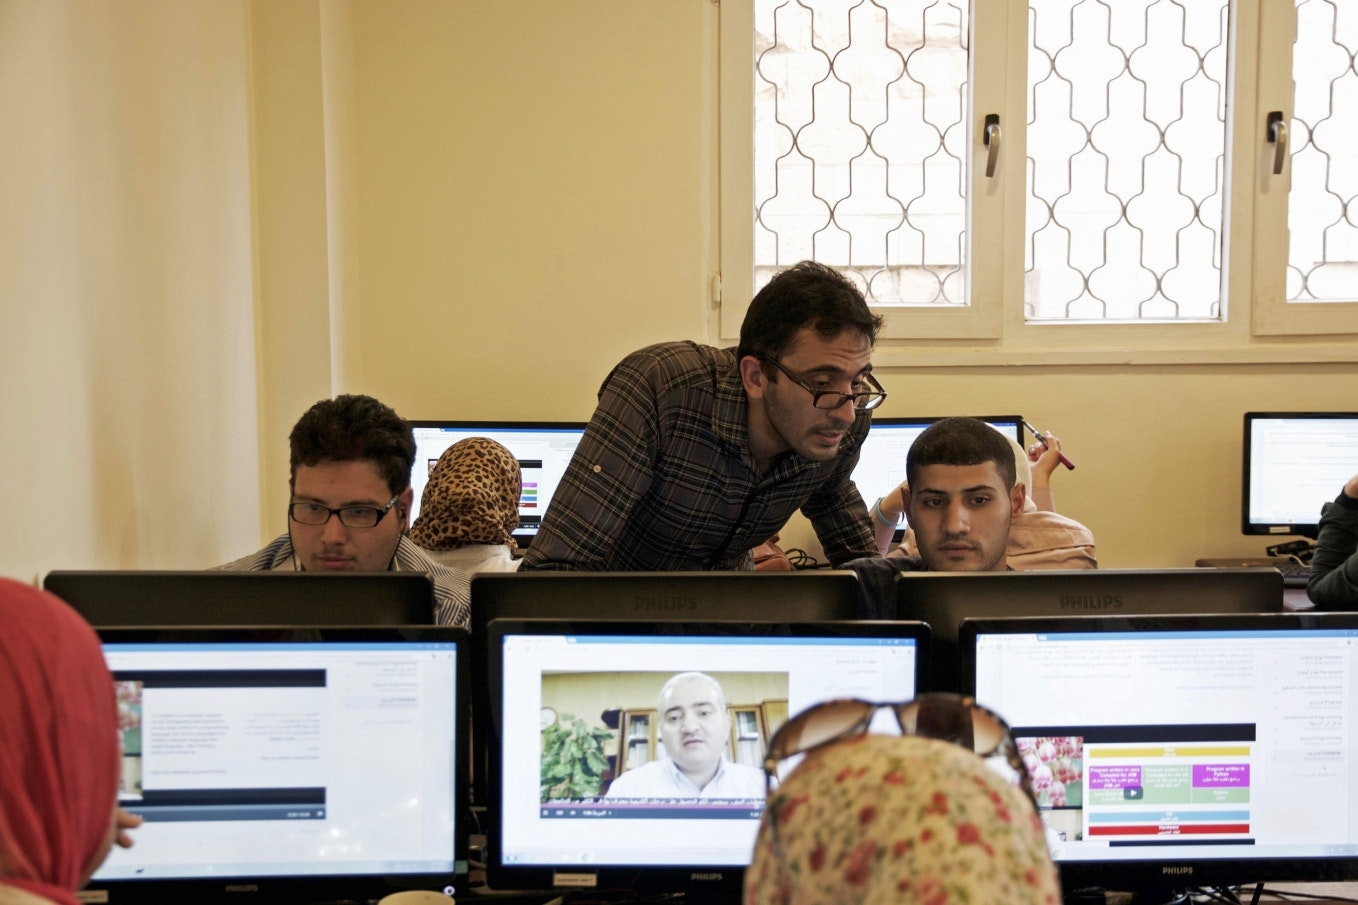 A teacher with students at computer stations